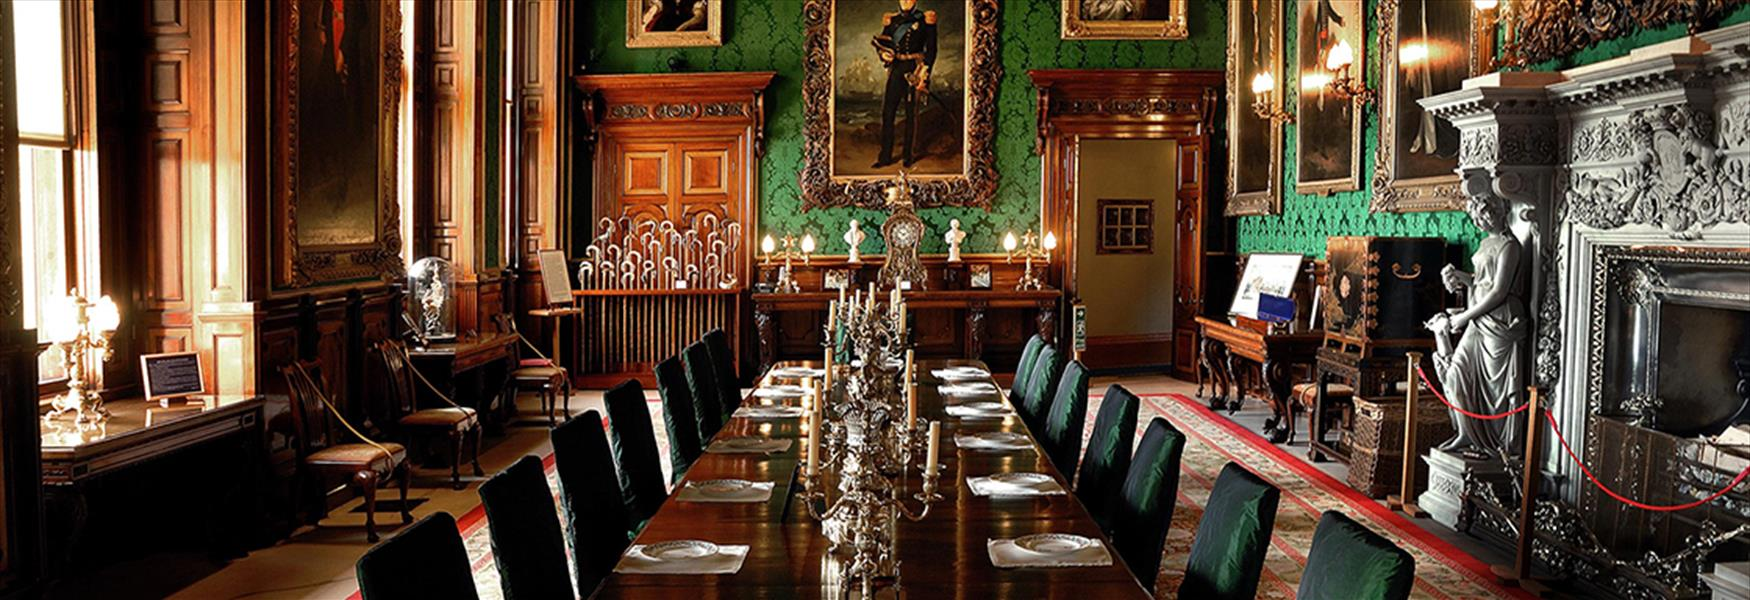 Alnwick Castle Dining Room